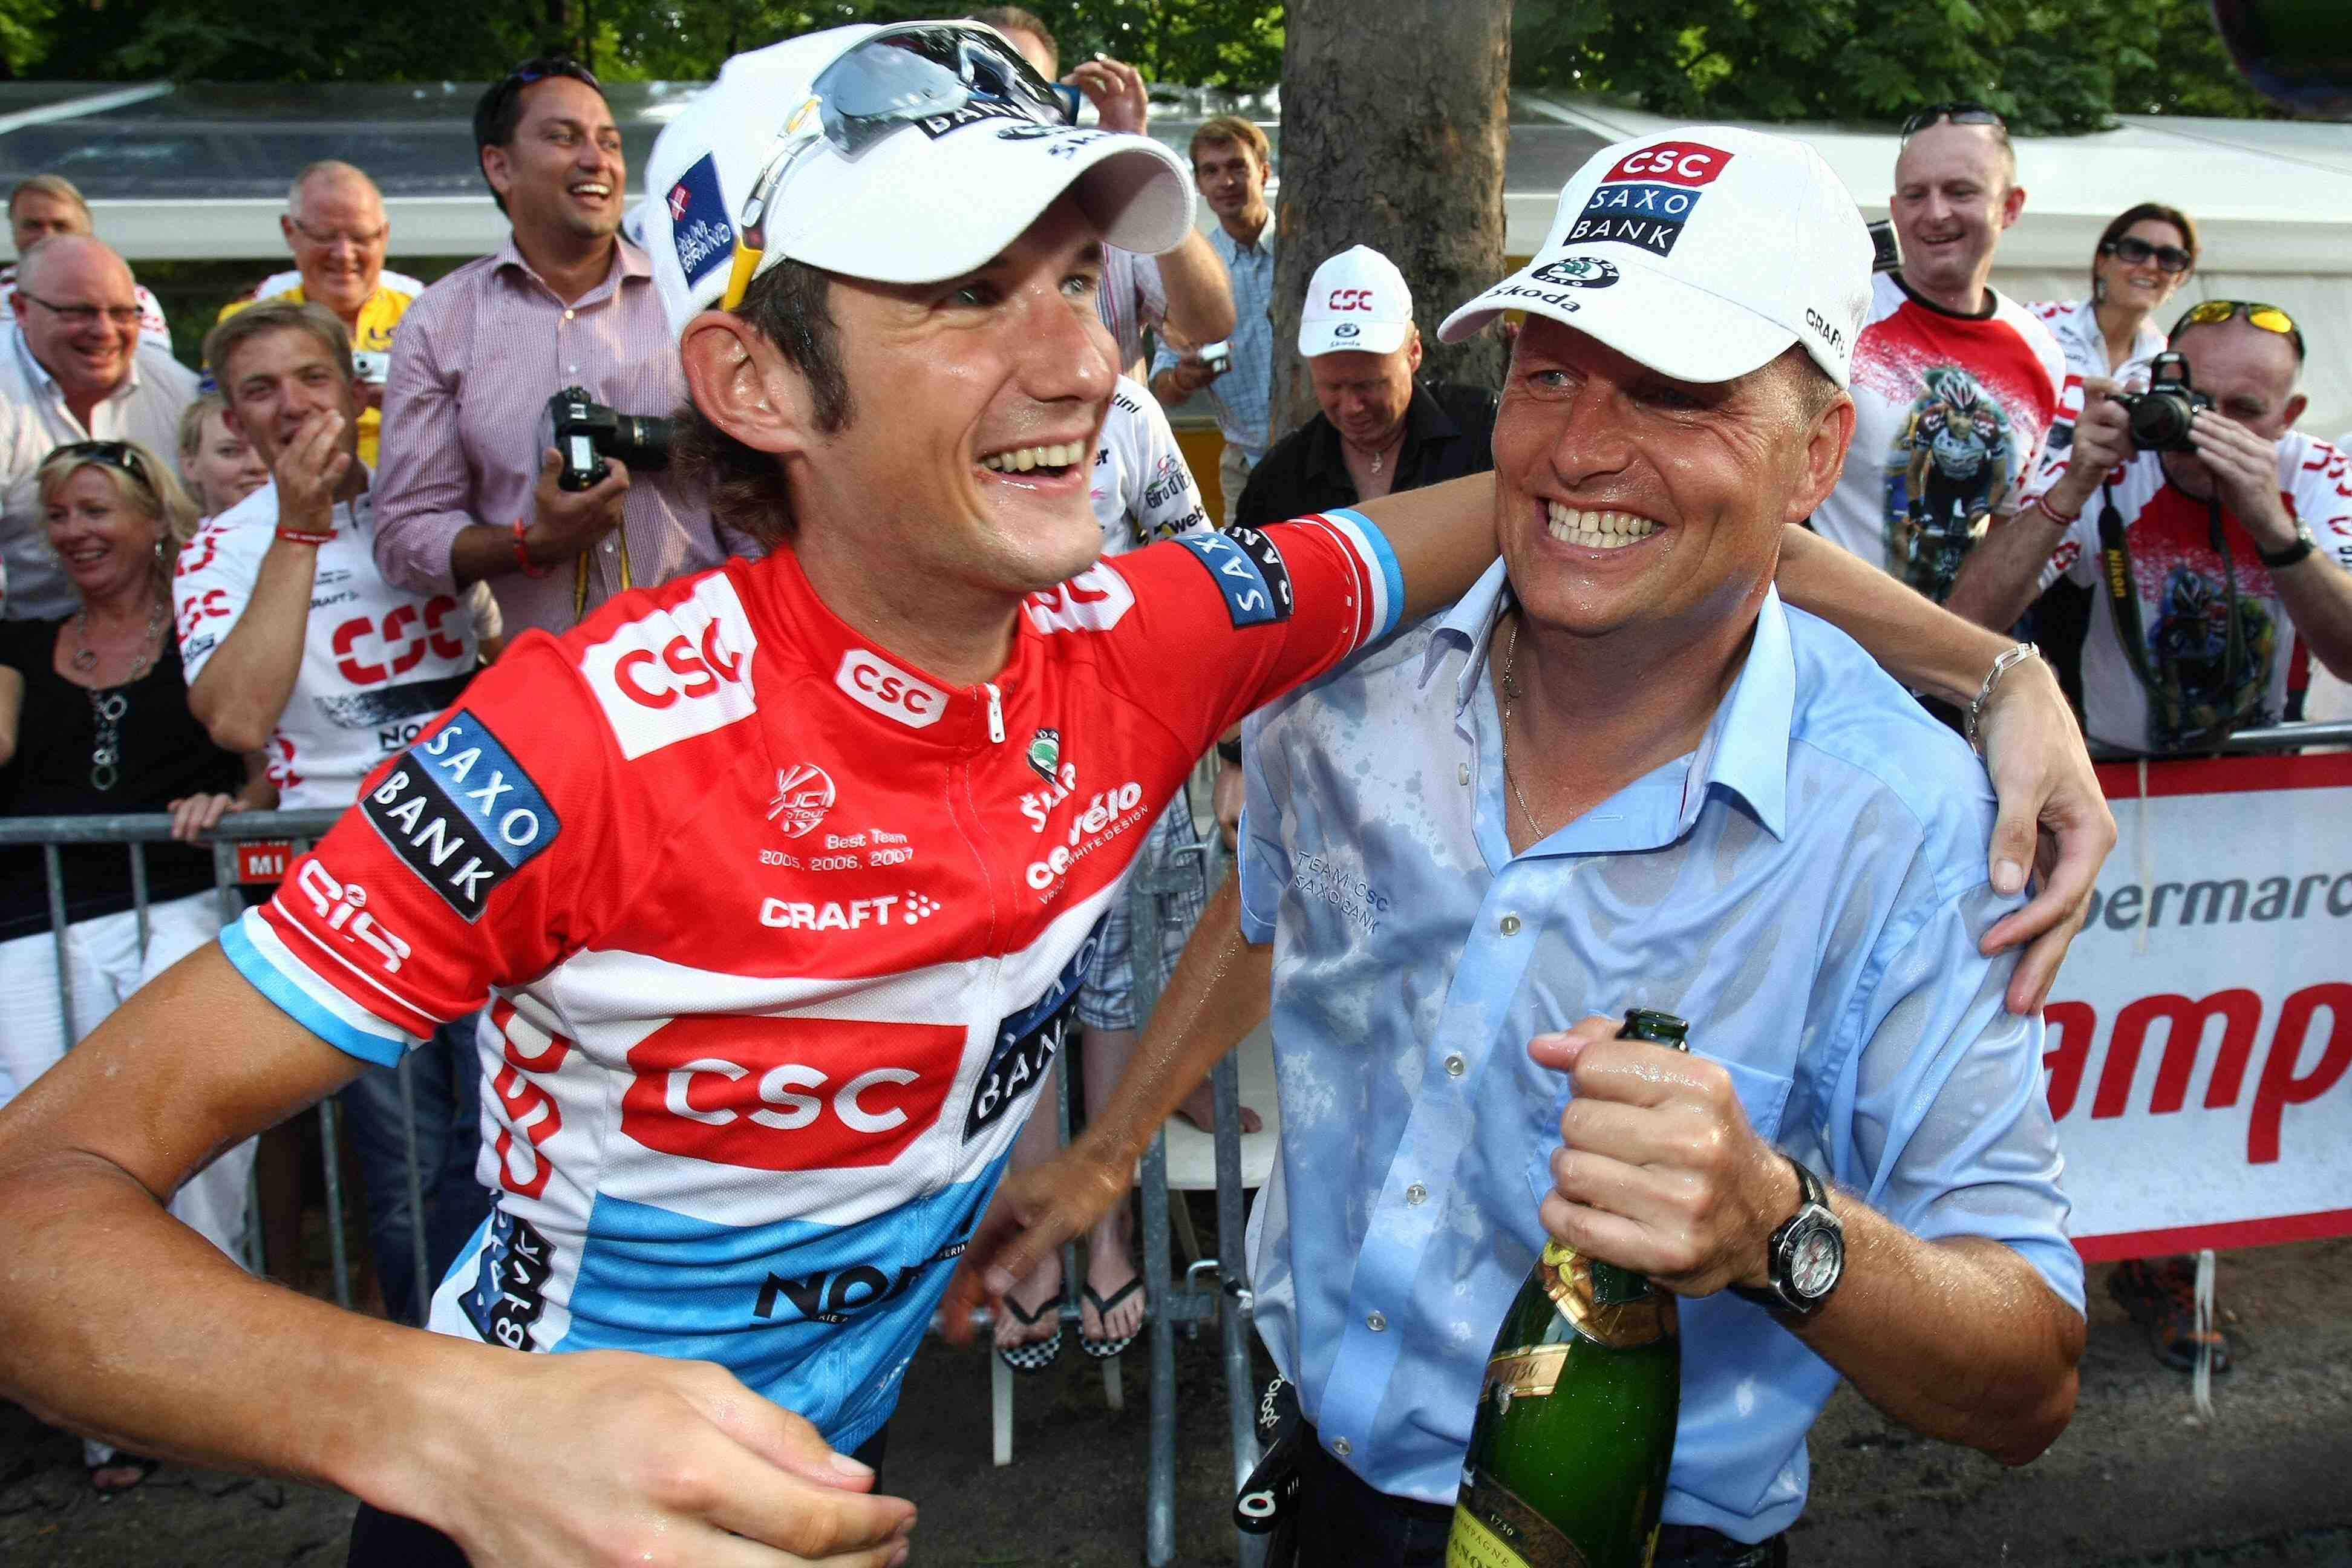 Team CSC's Frank Schleck and manager Bjarne Riis celebrate in Paris.